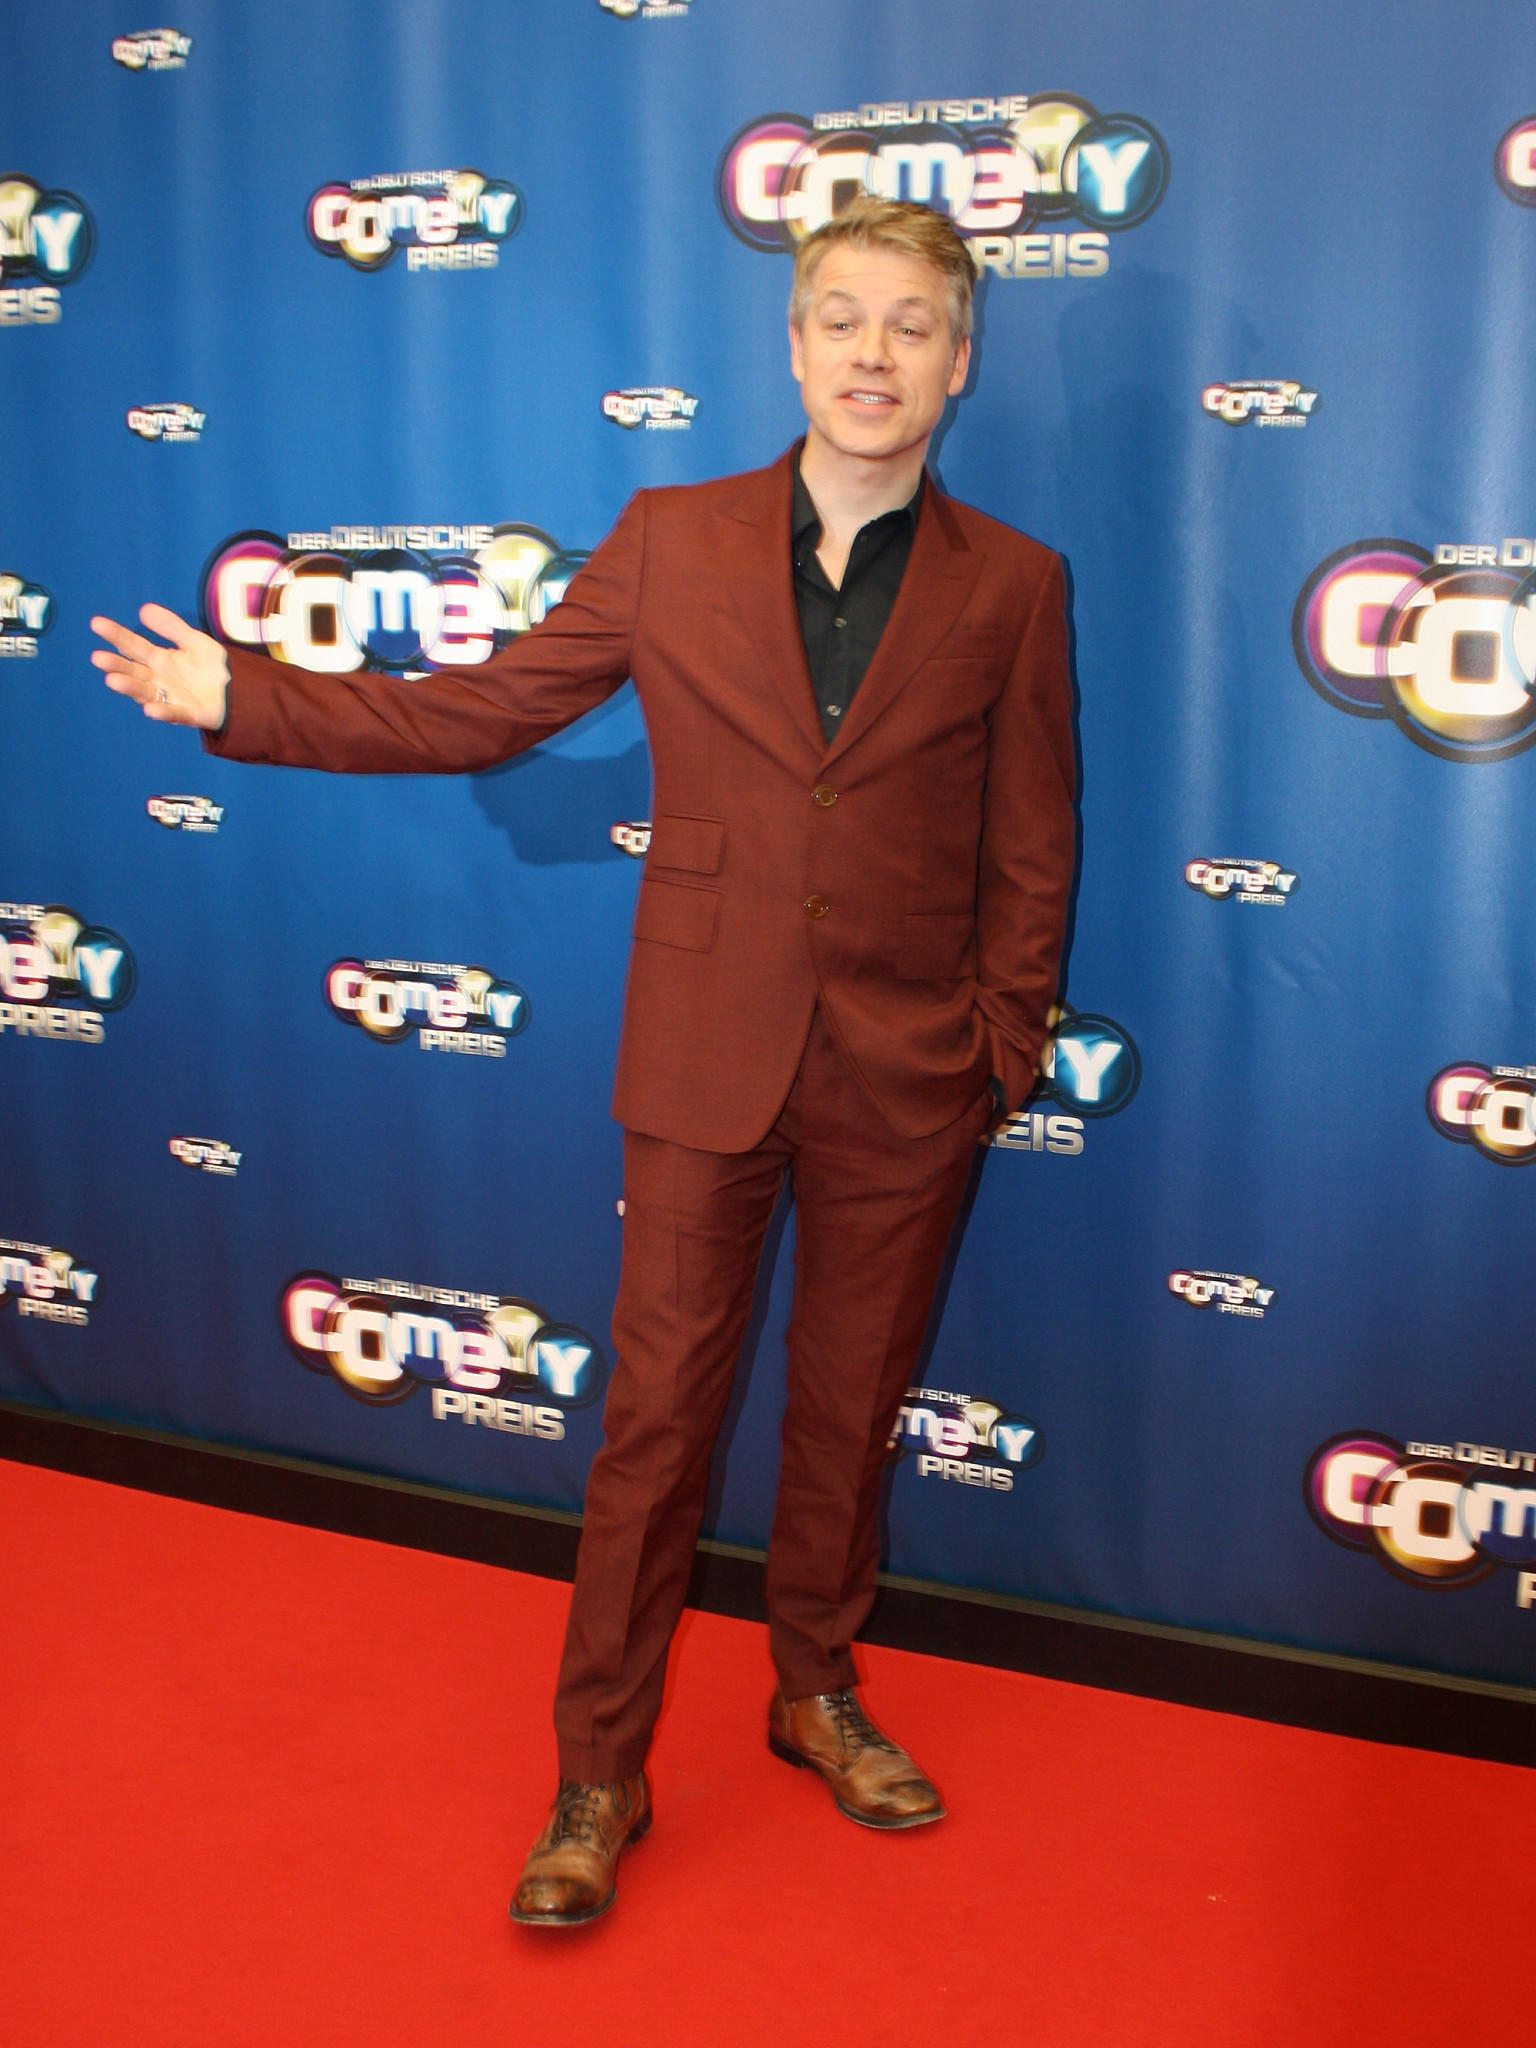 Comedypreis 2014: Style Roter Teppich Tops und Flops